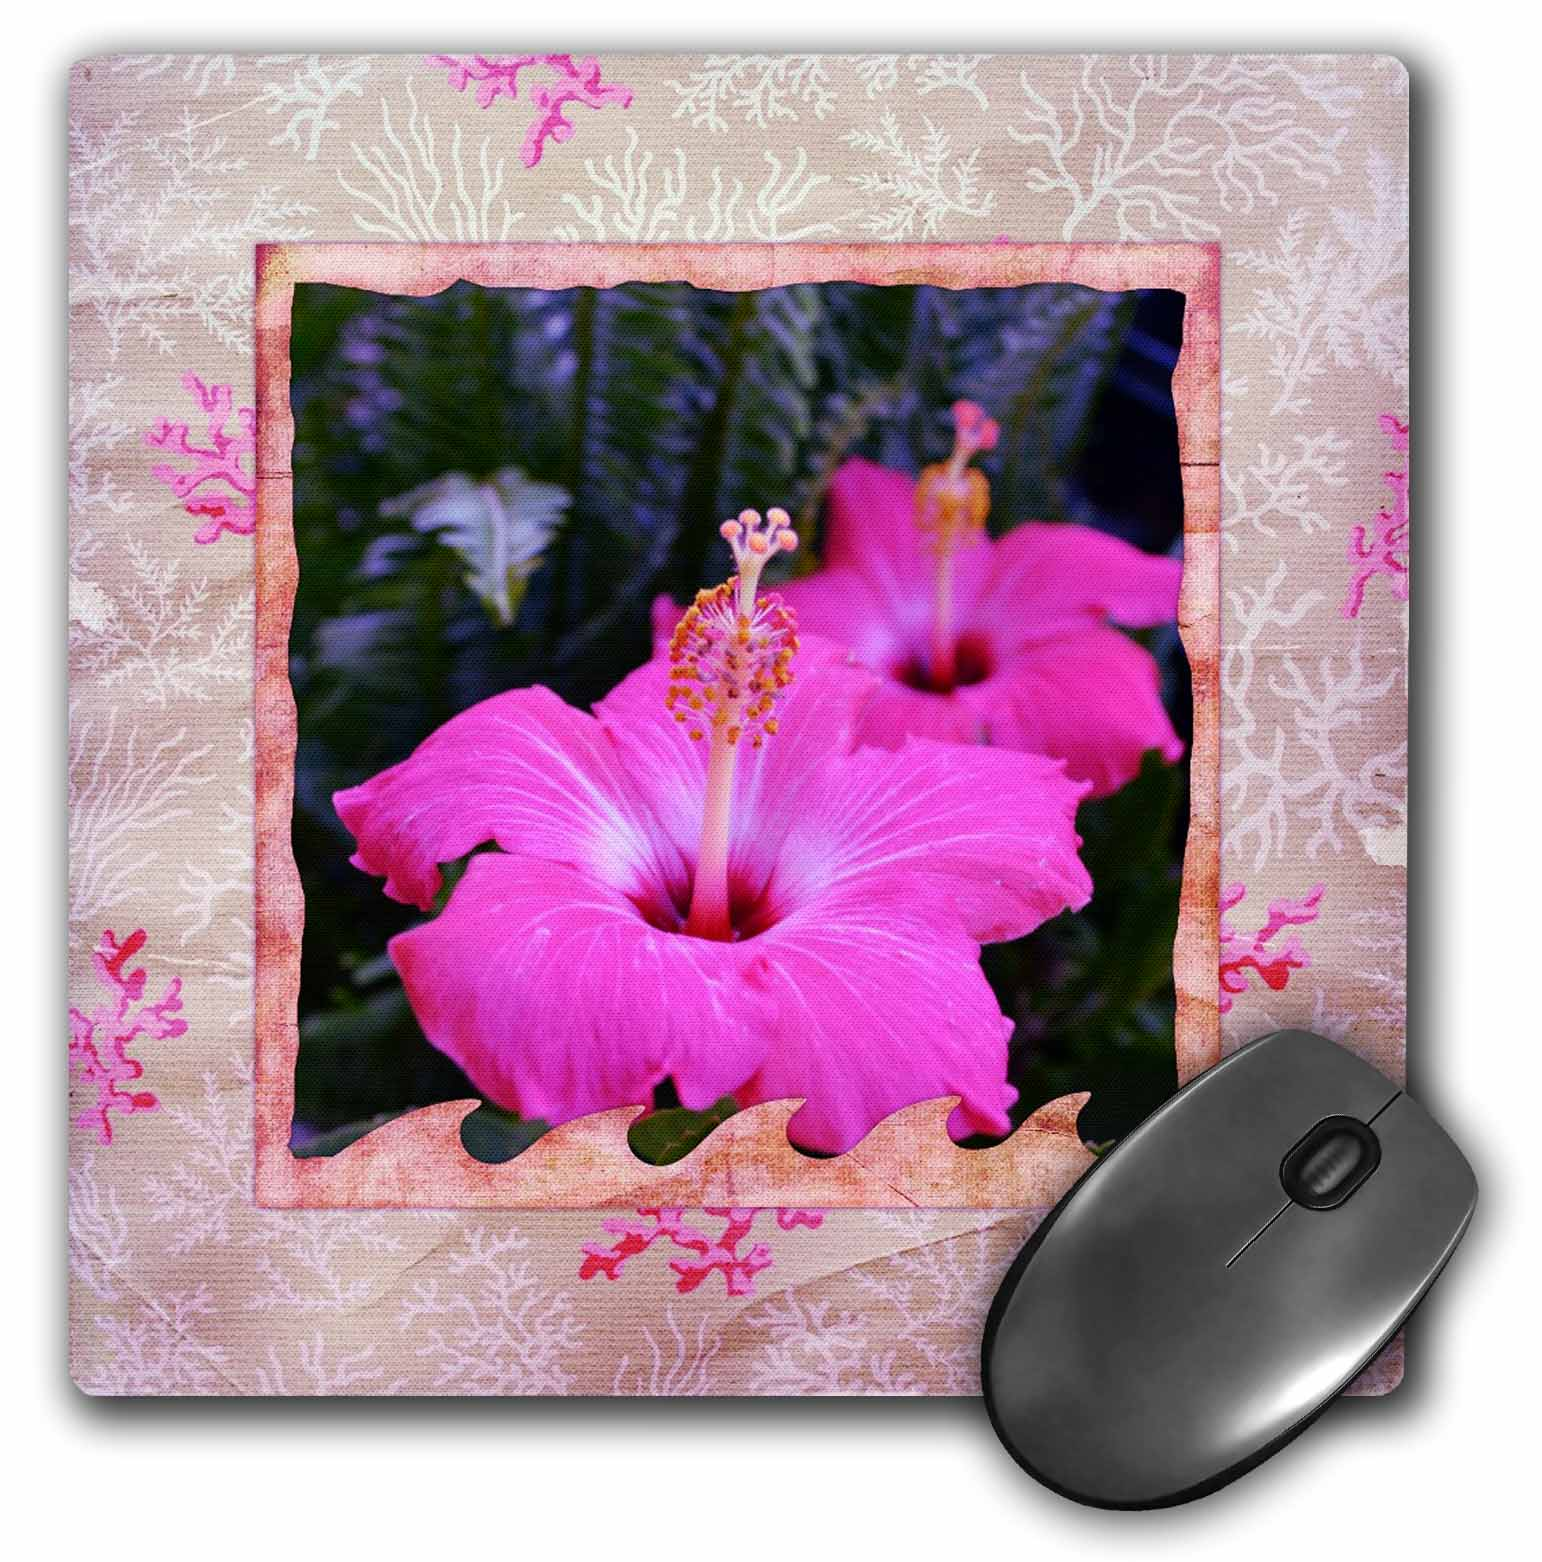 3dRose - Patricia Sanders Flowers - Delicate Pink Frame Hibiscus Flowers- Hawaiian- Photography - Mouse Pads at Sears.com